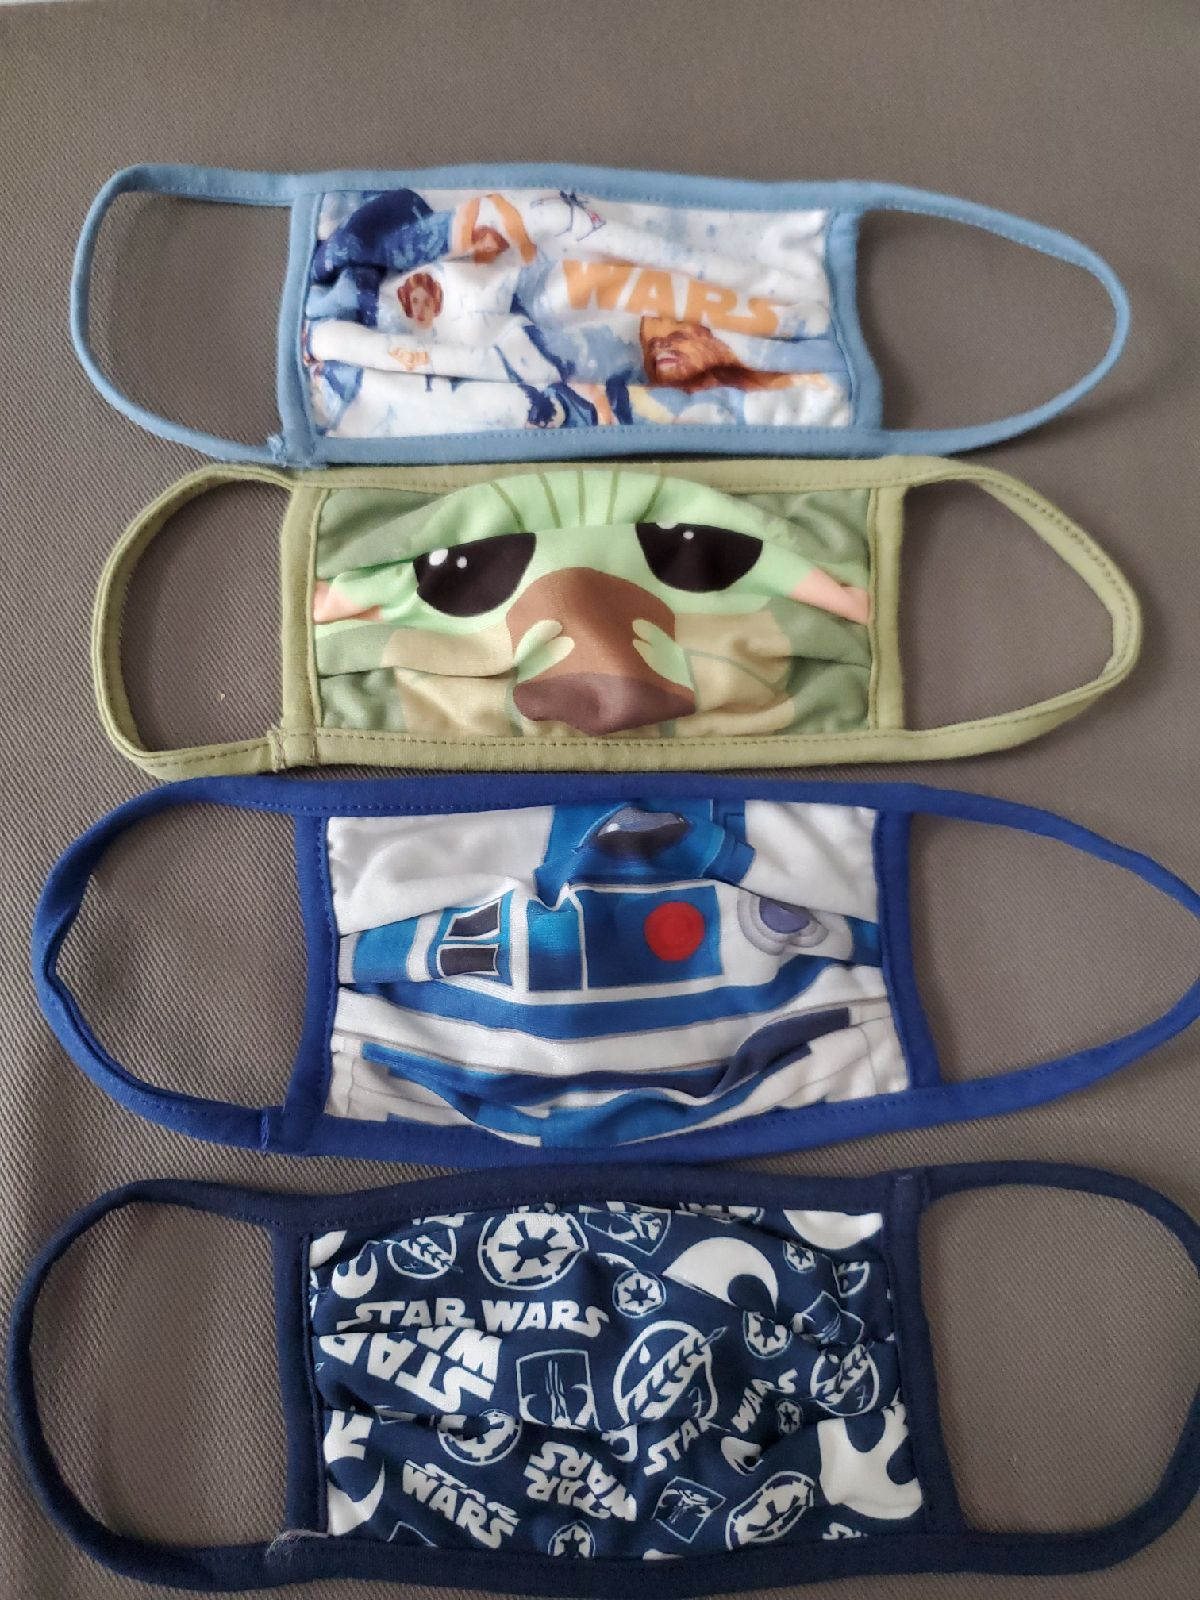 Disney Star Wars masks-size large